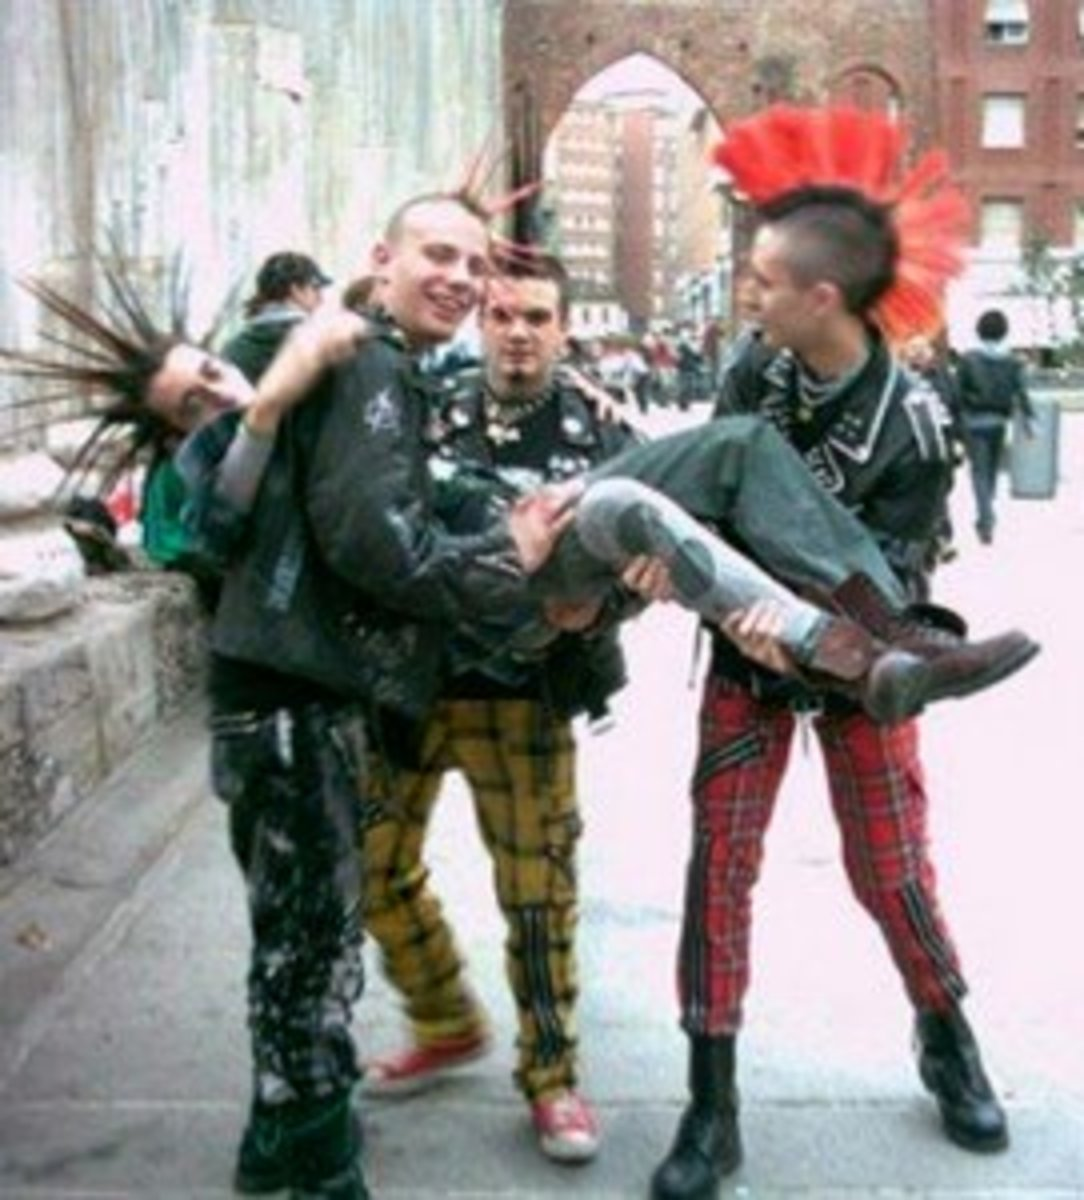 The rebellious punk hairstyles which originated in the 1970s were inspired by Mohawk tribal hair.